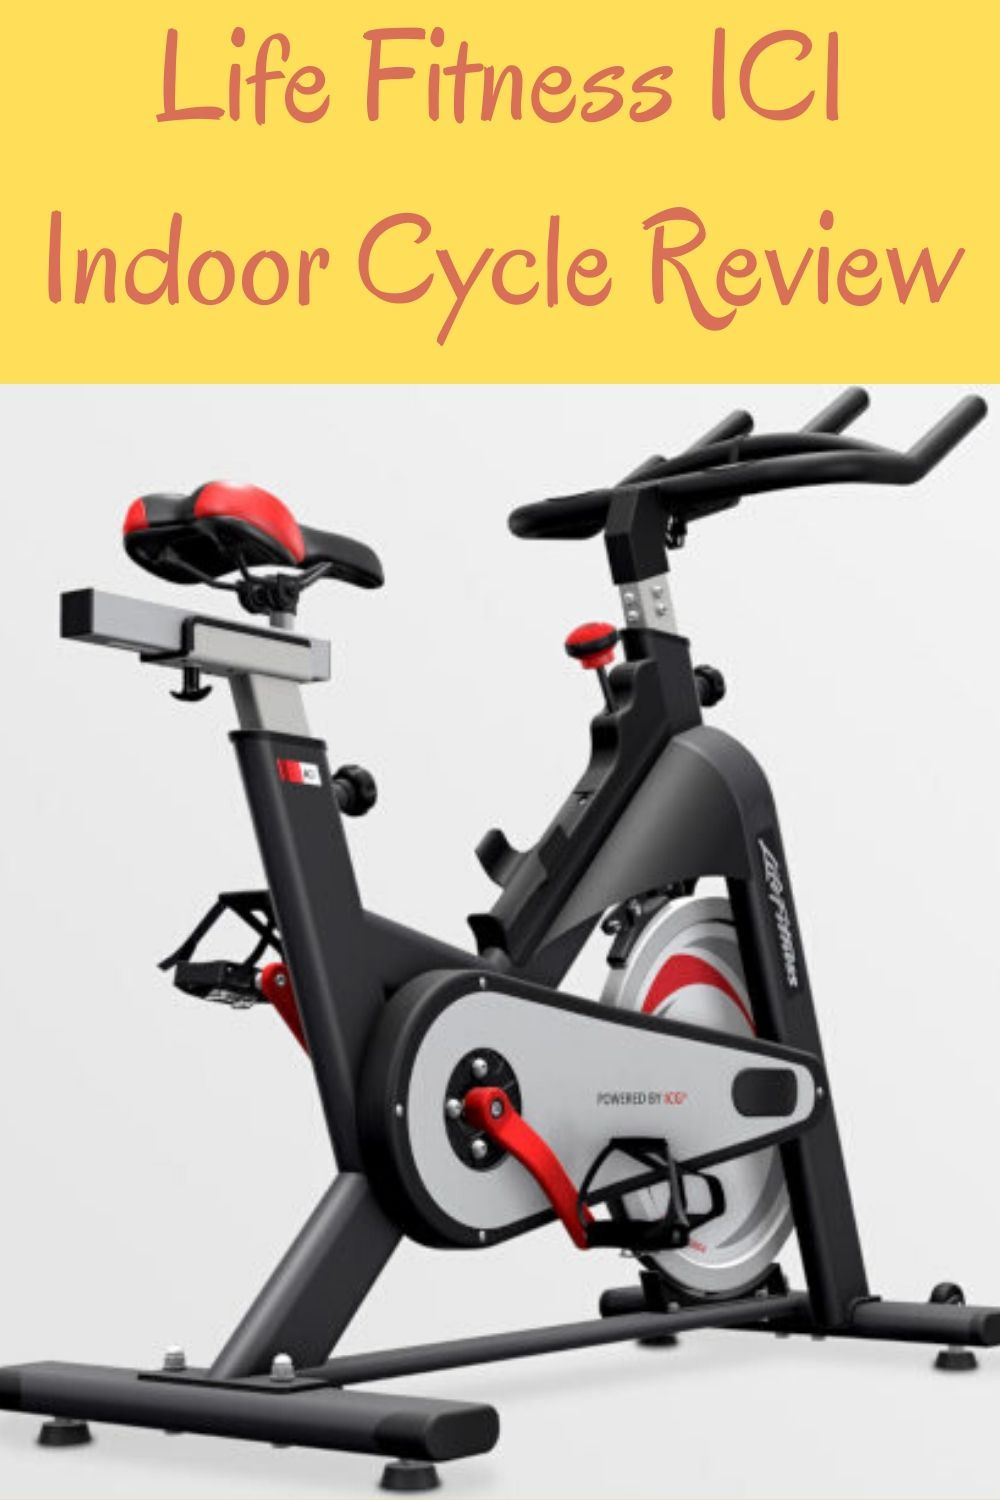 Life Fitness Ic1 Indoor Cycle Review Biking Workout Fit Life Fitness